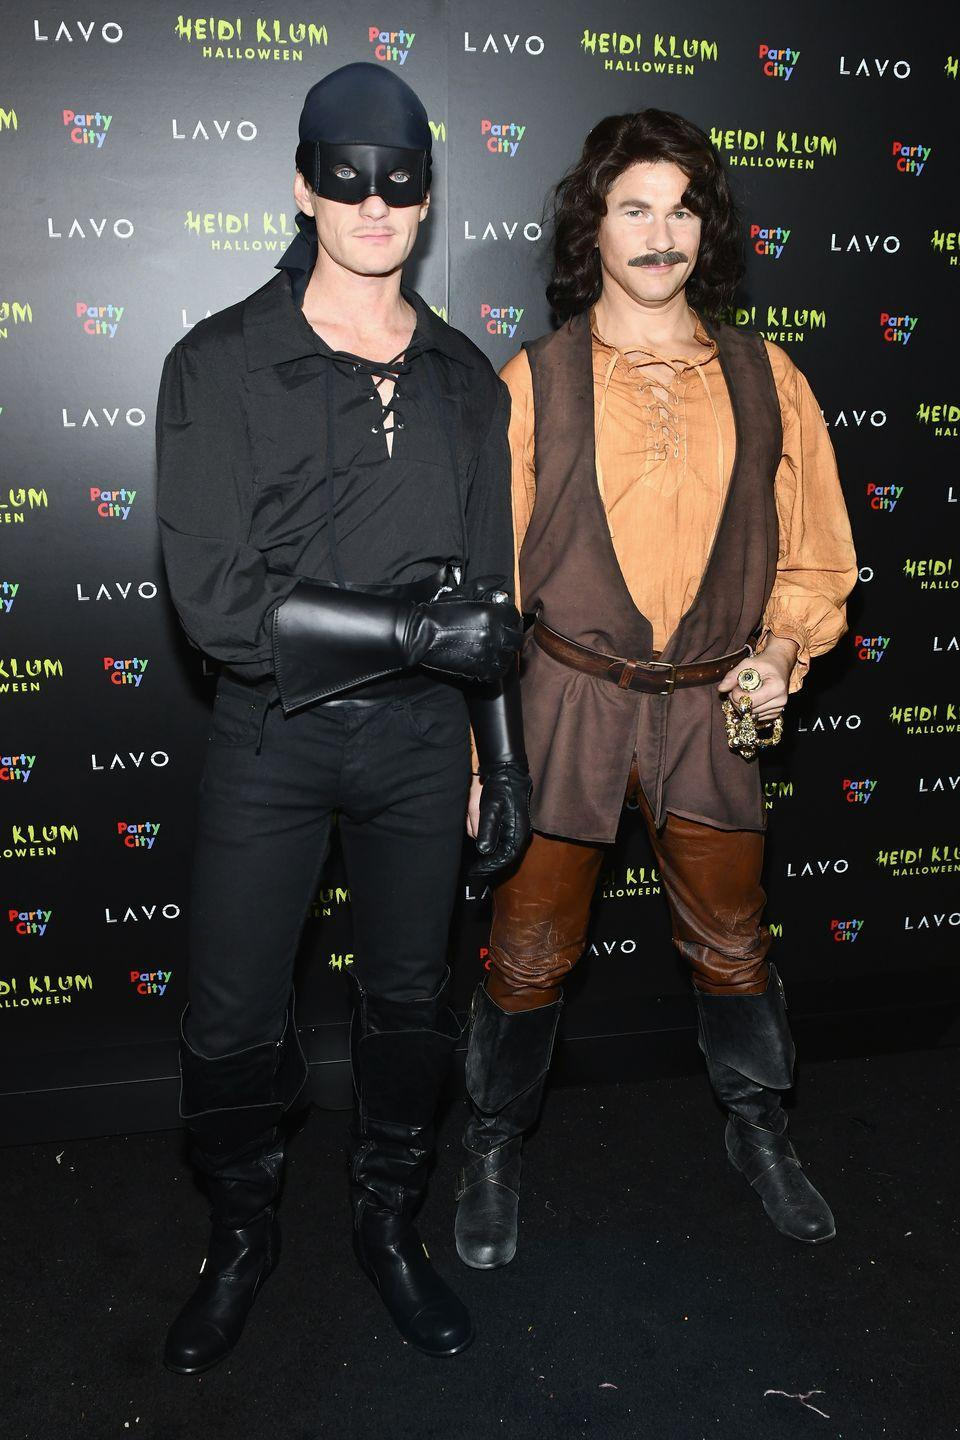 <p>As Westley and Inigo Montoya from <em>The Princess Bride</em>.</p>